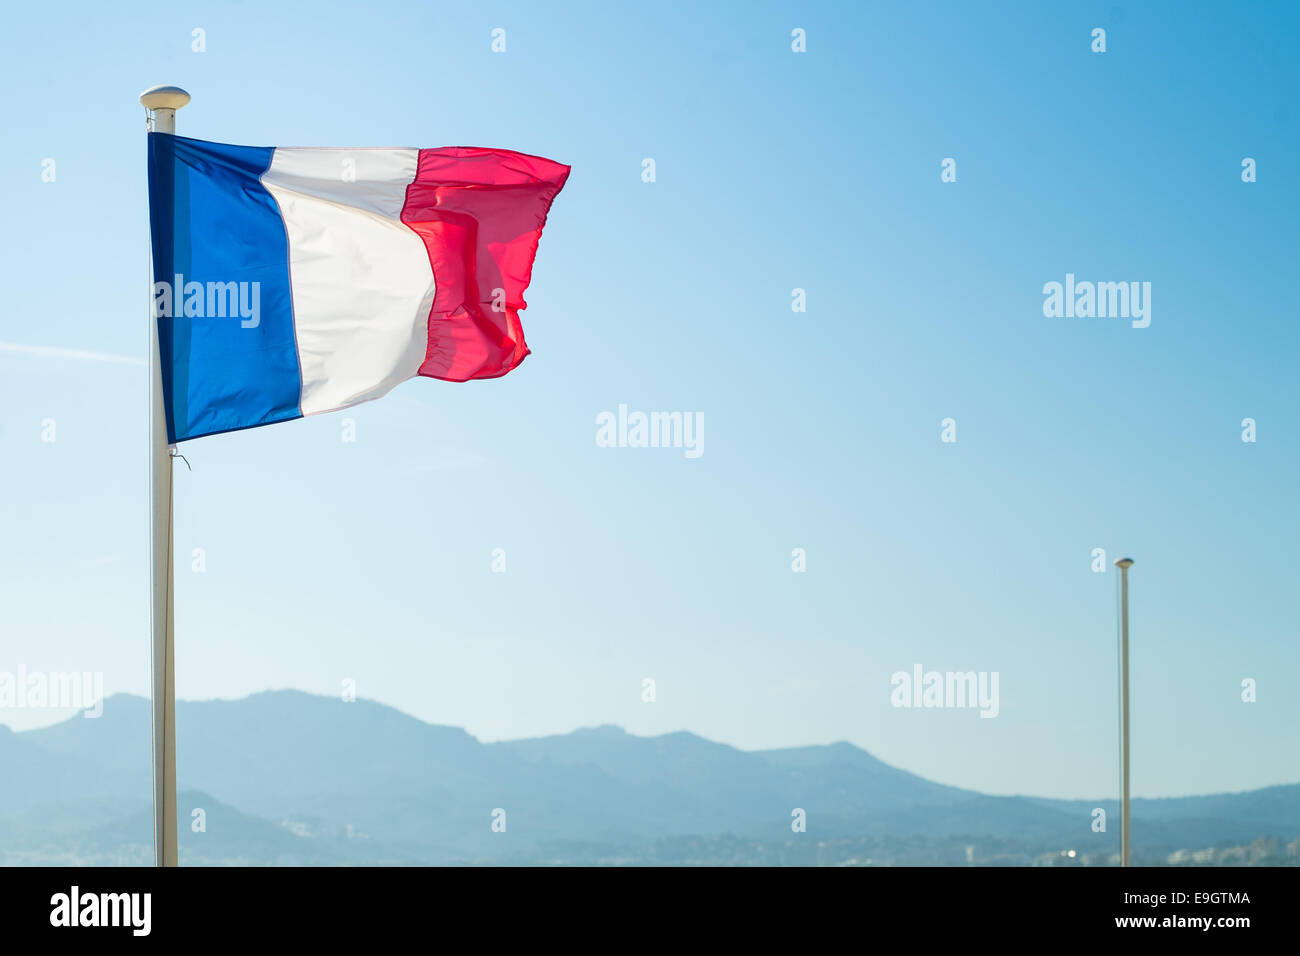 French flag flown on the beach in Cannes - Stock Image